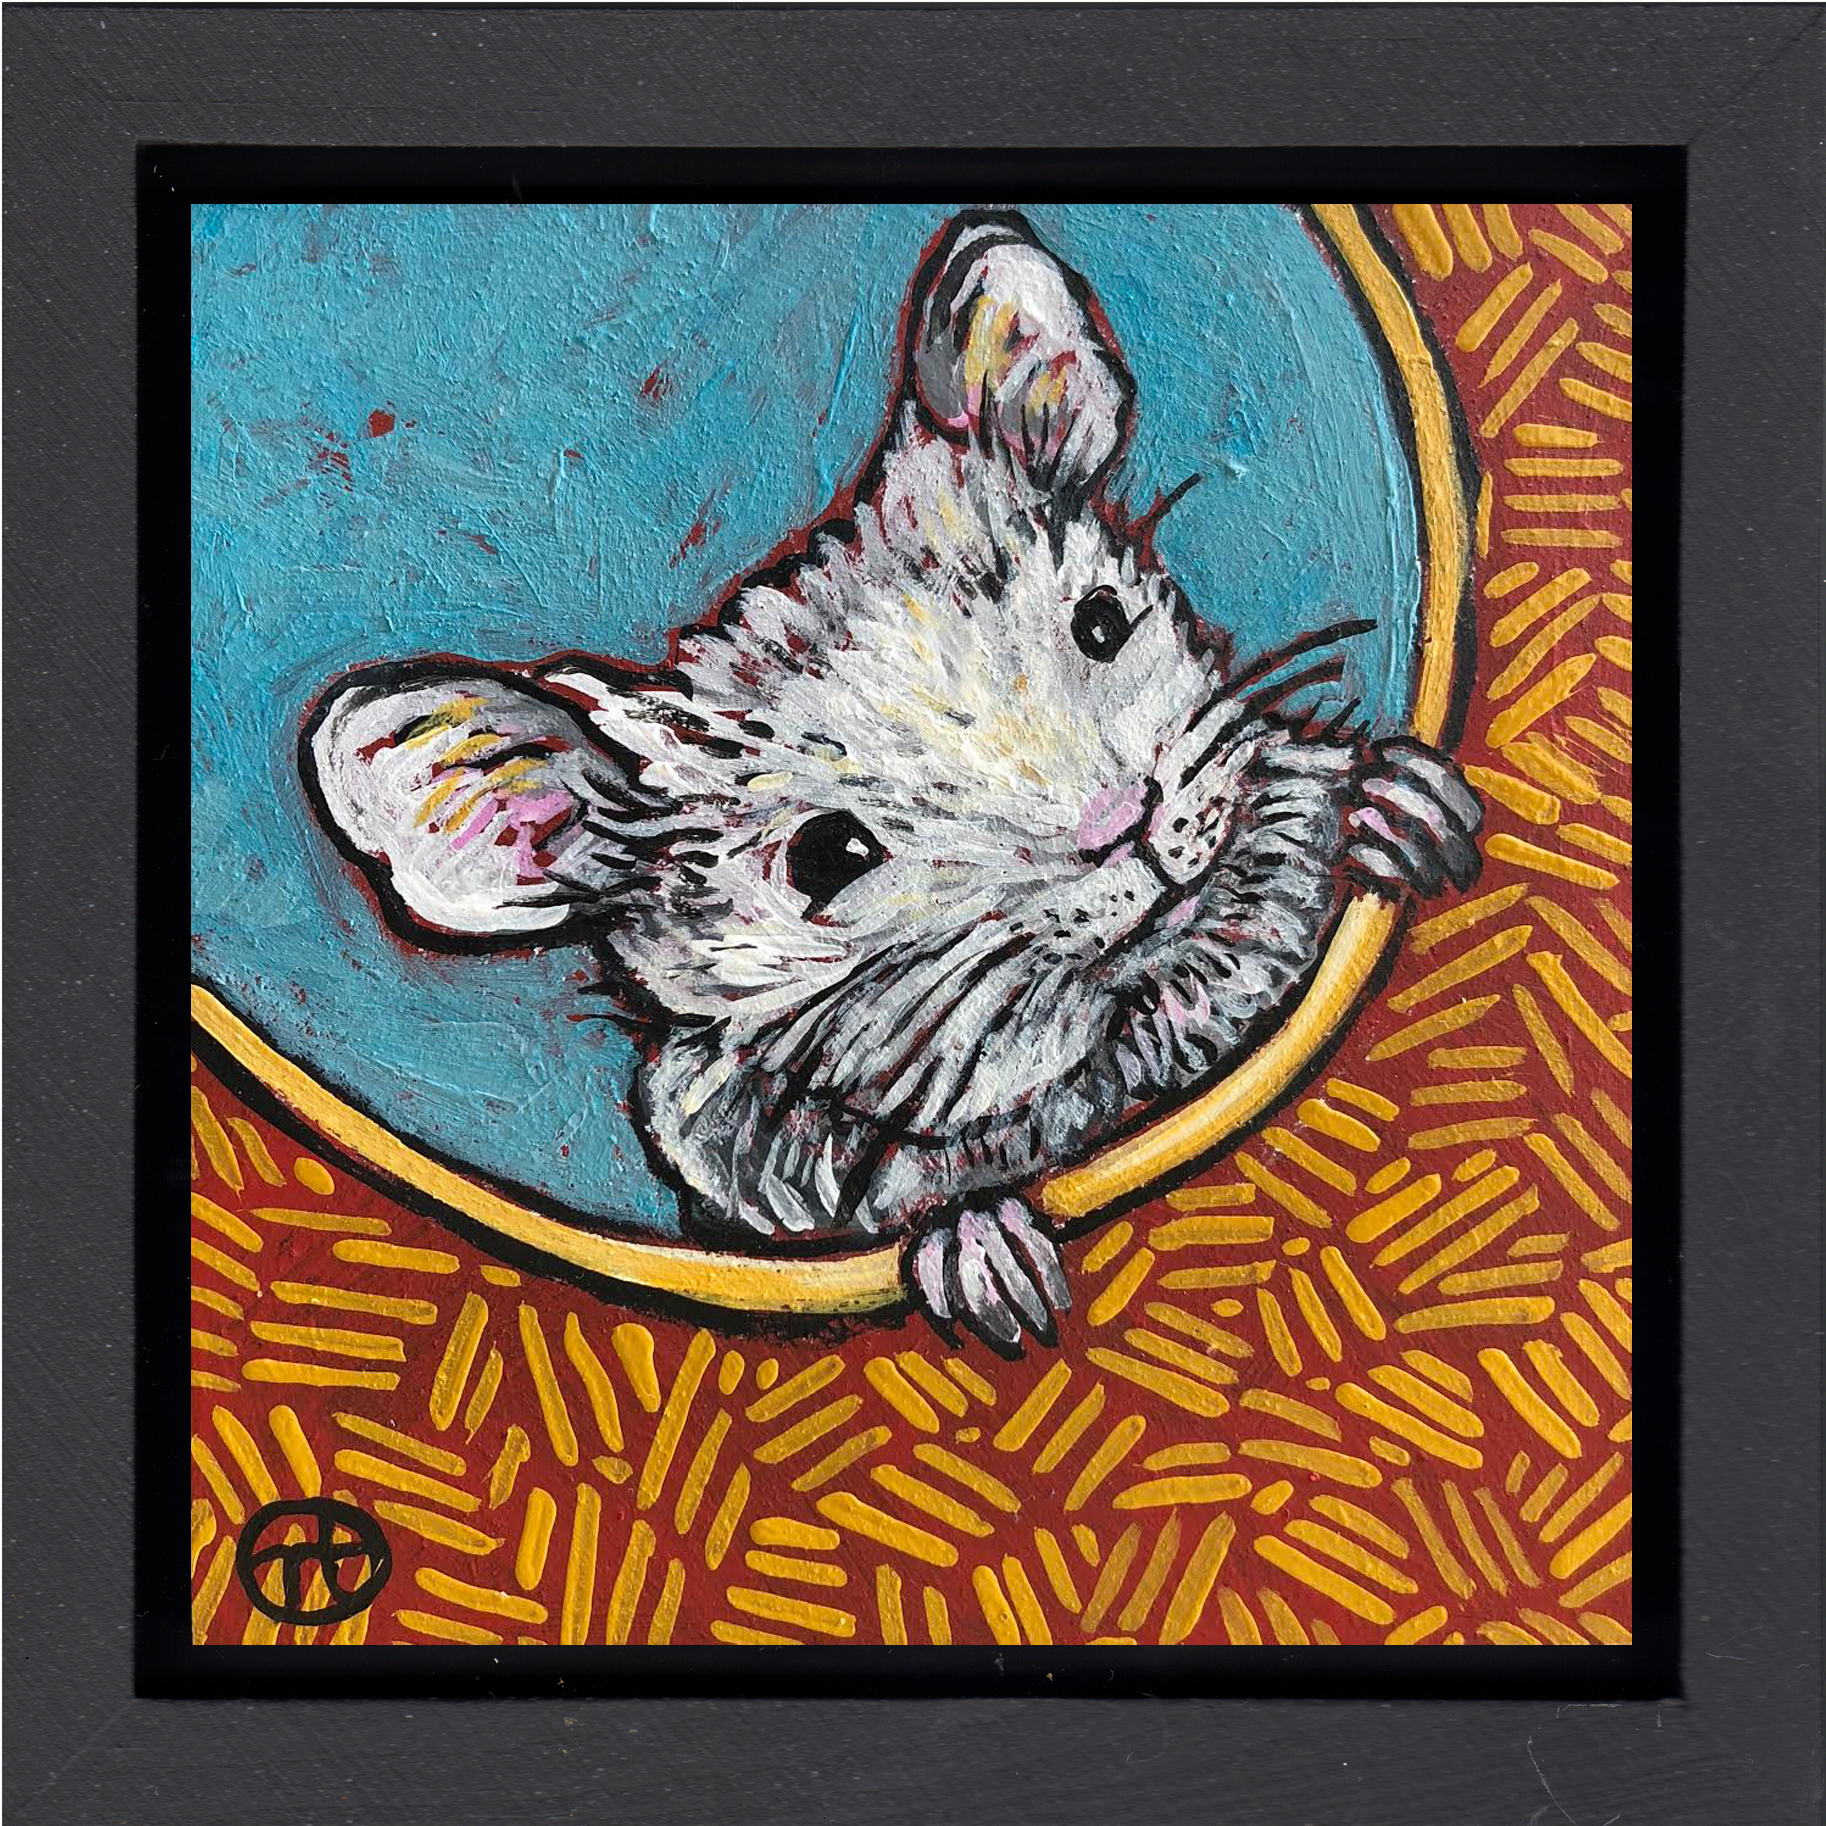 """acrylic on wood, 6.5"""" x 6.5"""" (including frame),  wood frame is 1.5 inches deep and made locally"""